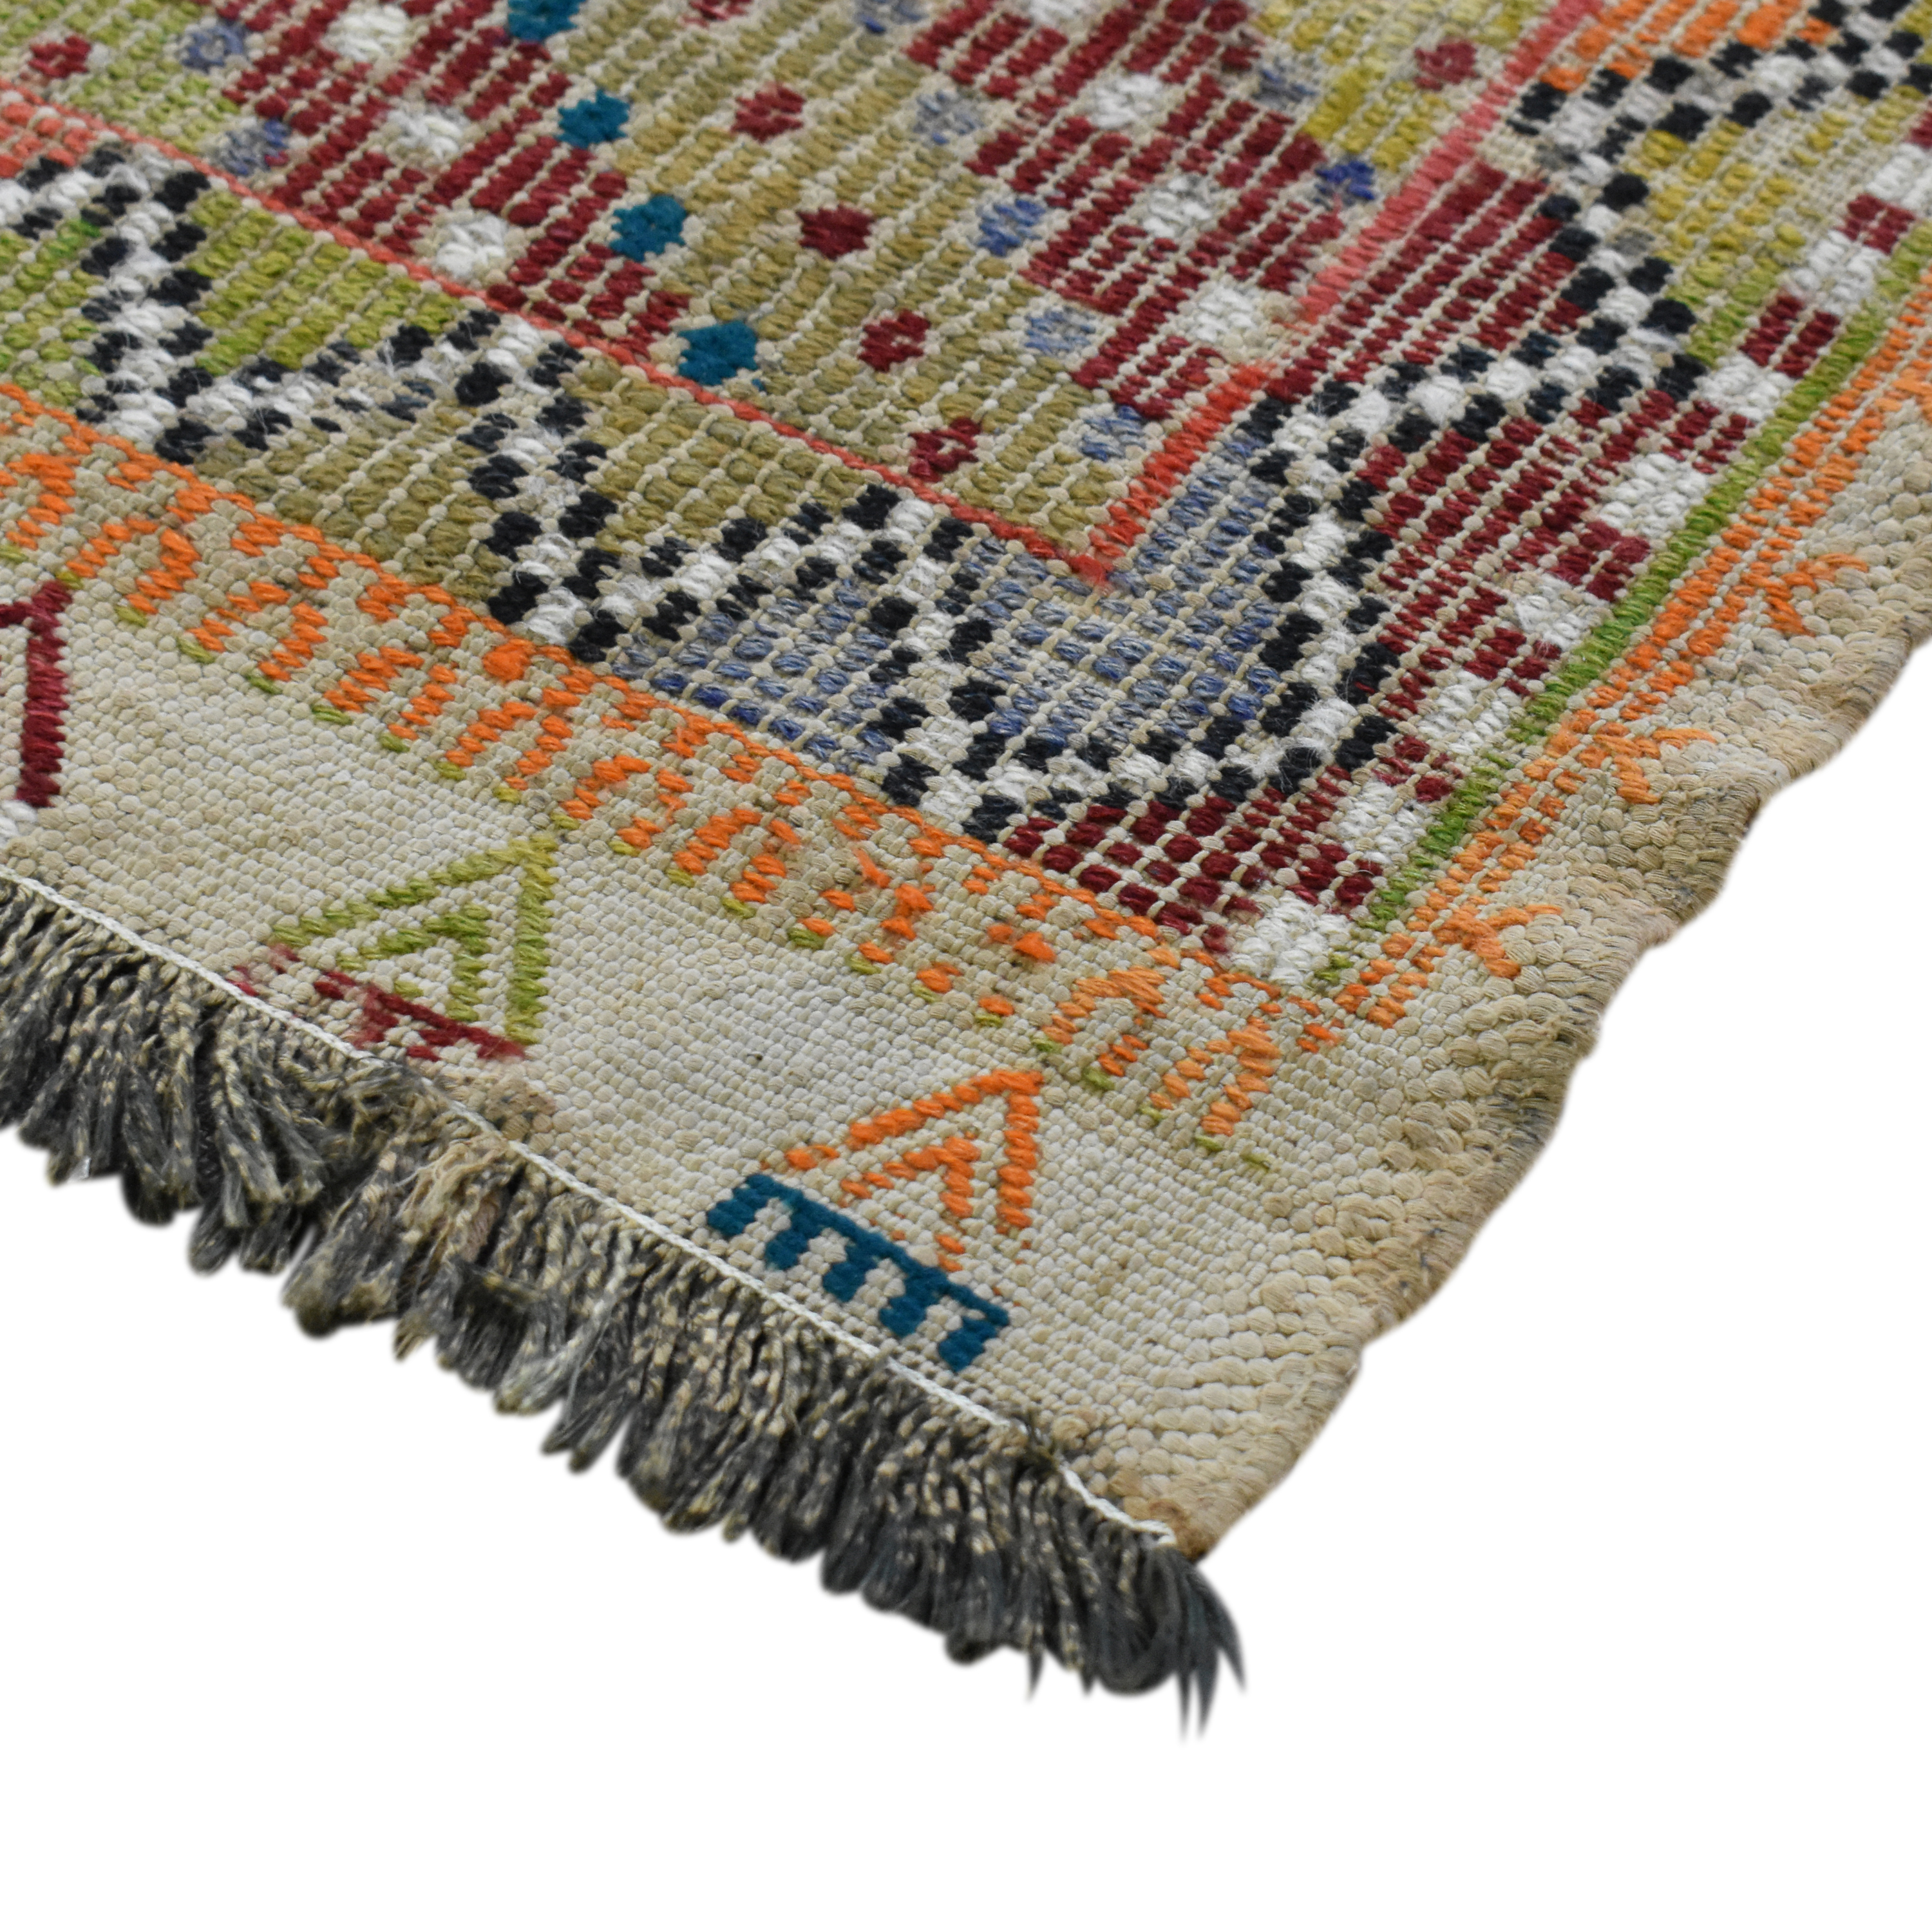 Double Knot Double Knot Kilim Rug used